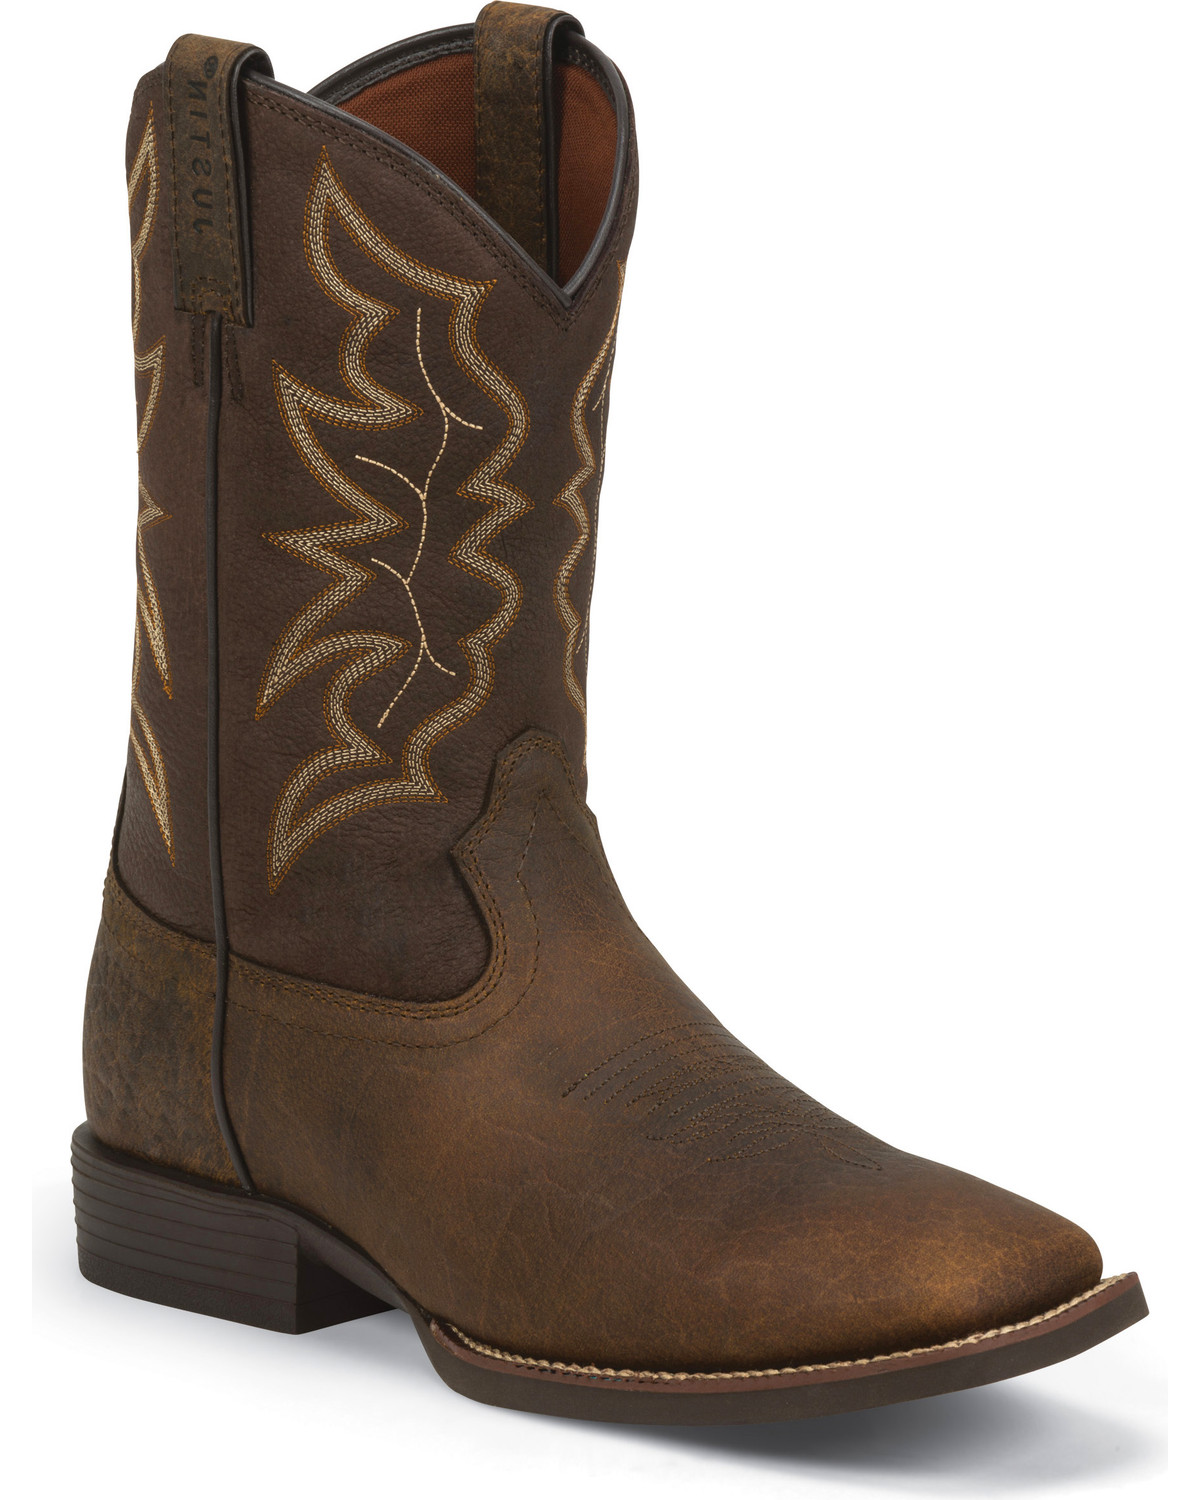 90978d0cac5 Justin Men's Stampede Square Toe Western Boots